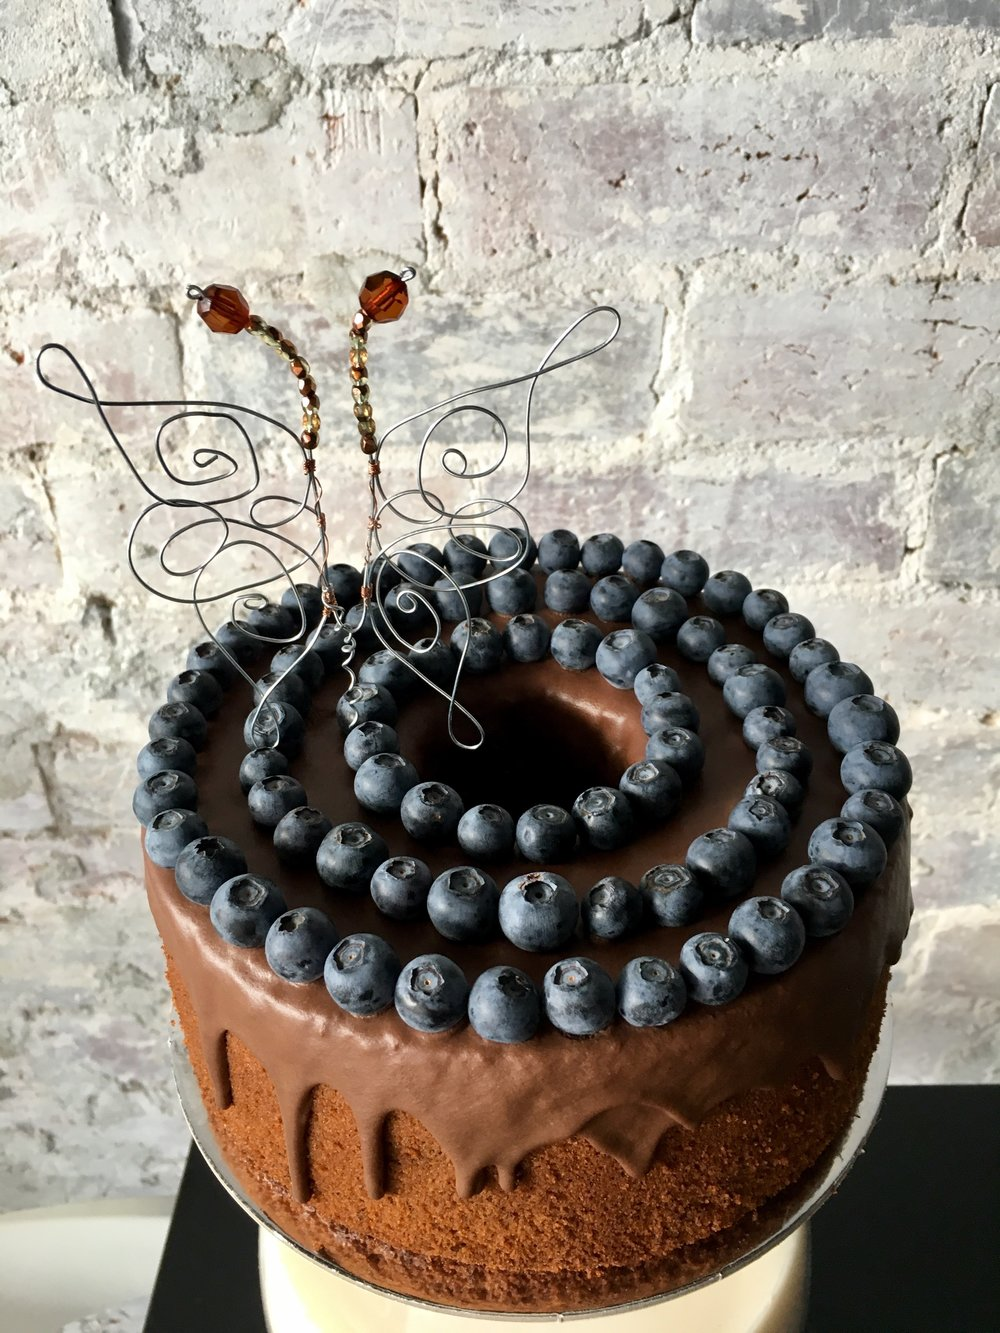 Blueberry Chocolate - Light as air chocolate chiffon cake, with velvety chocolate ganache and fresh blueberry detail.Wire butterfly made in-house.